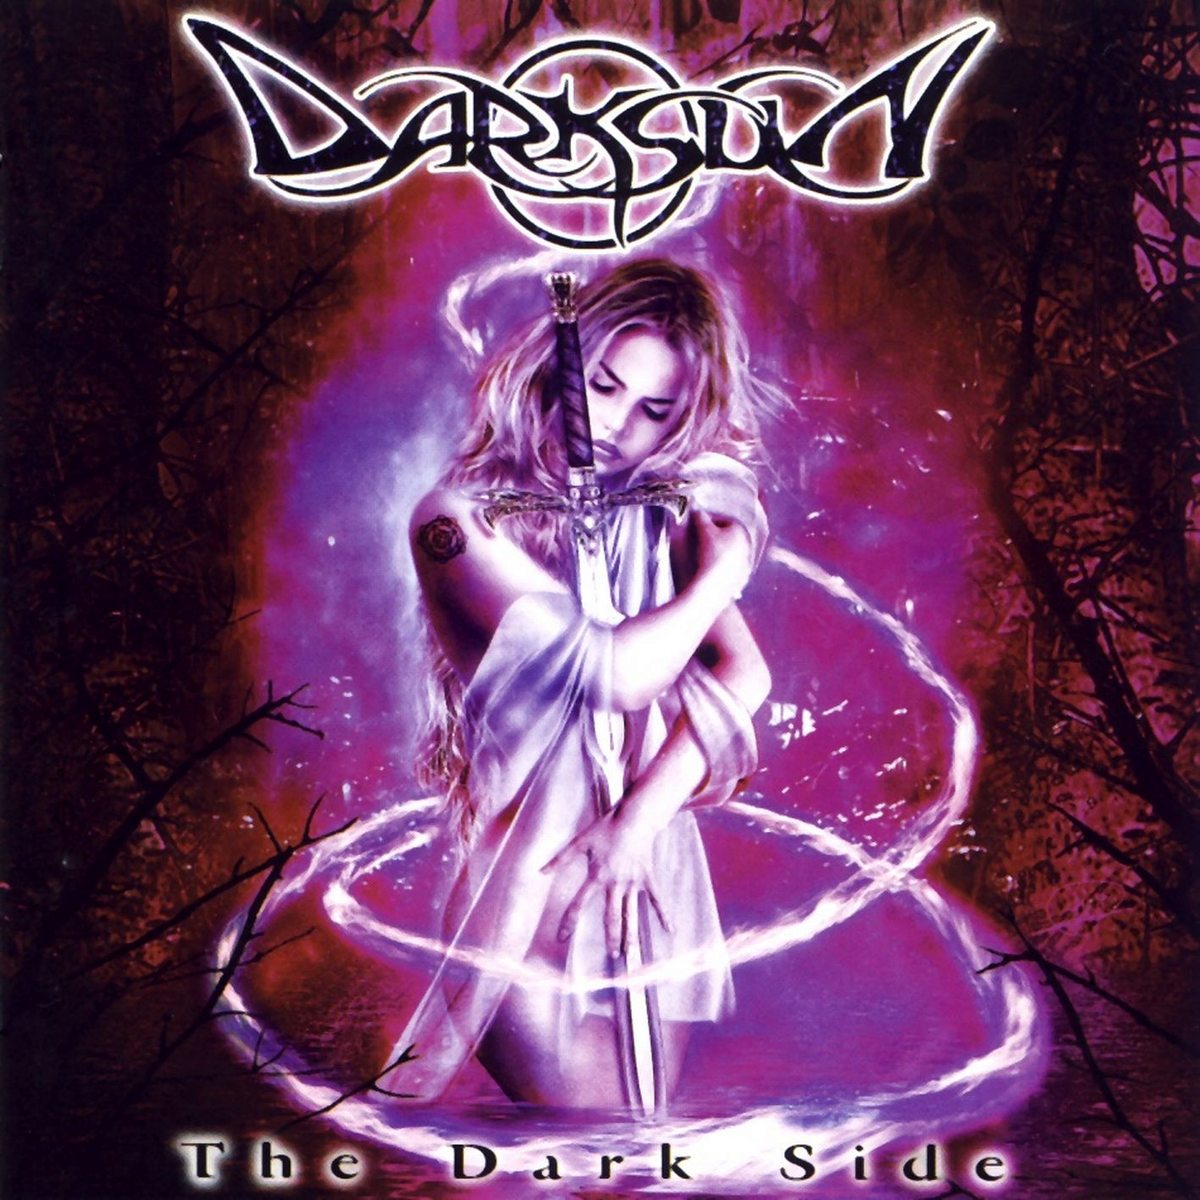 Darksun - The Dark Side